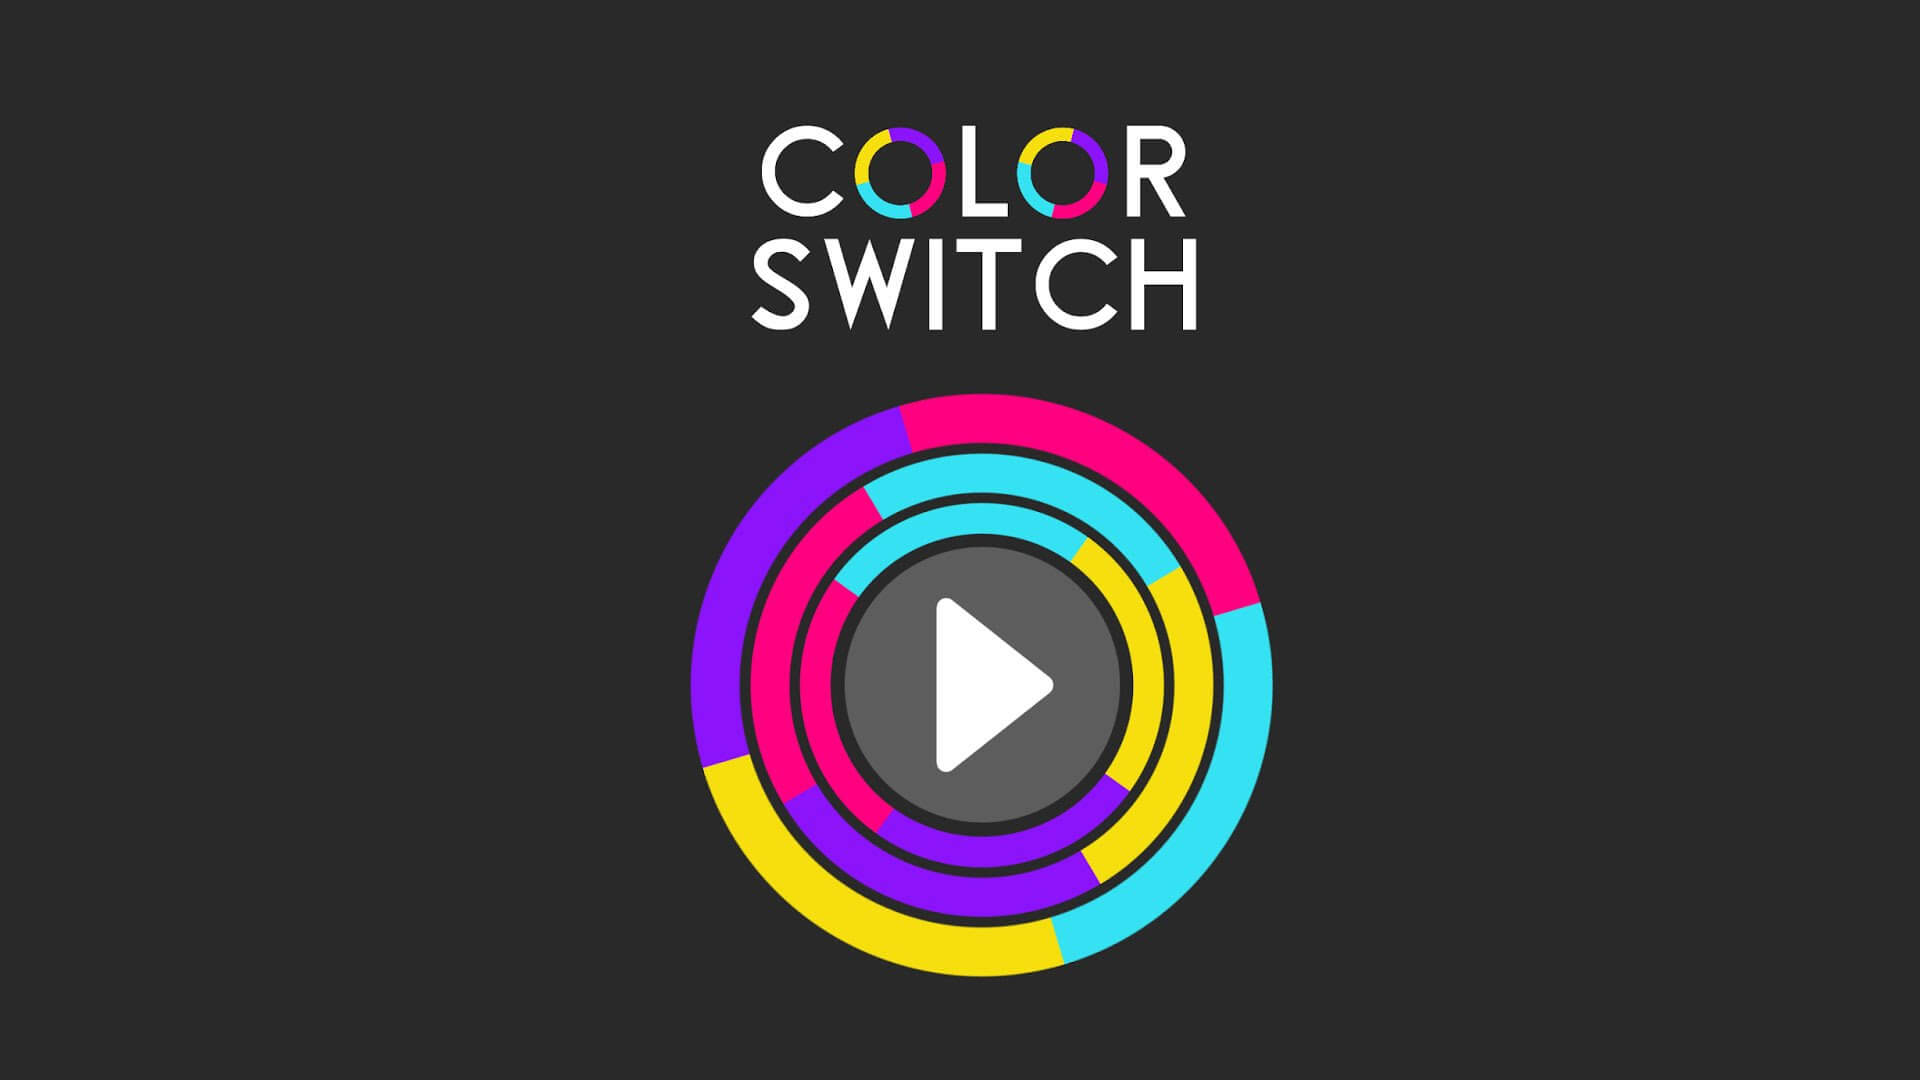 Wait for the colors to switch.